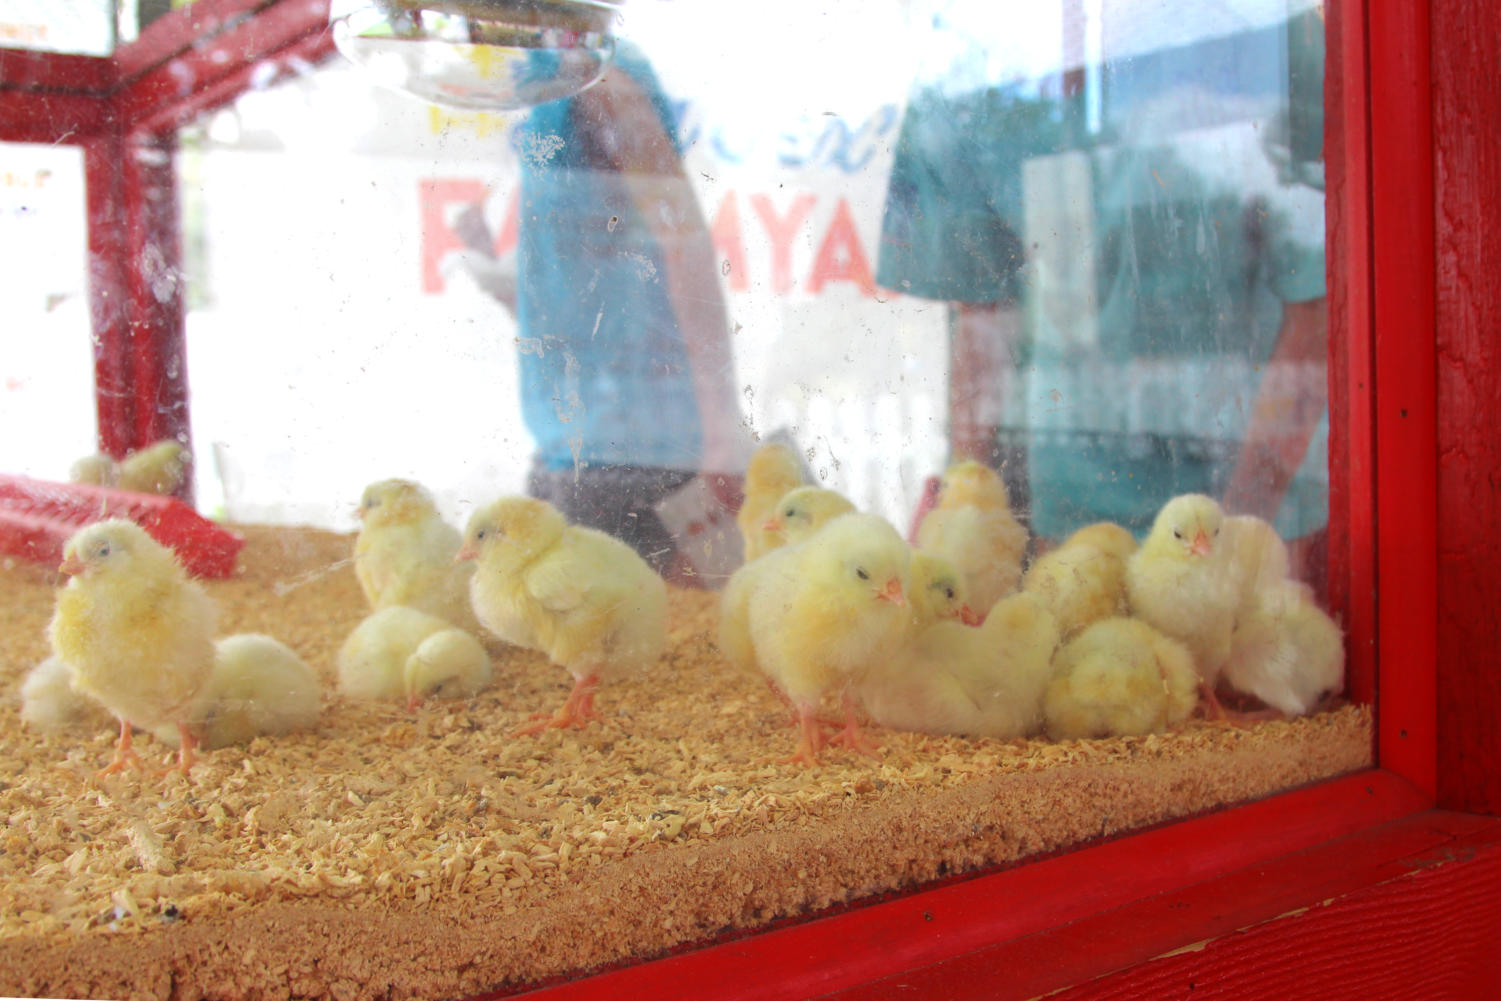 Baby+chicks+attracted+many+kids+who+wandered+into+the+children%27s+farm+area.